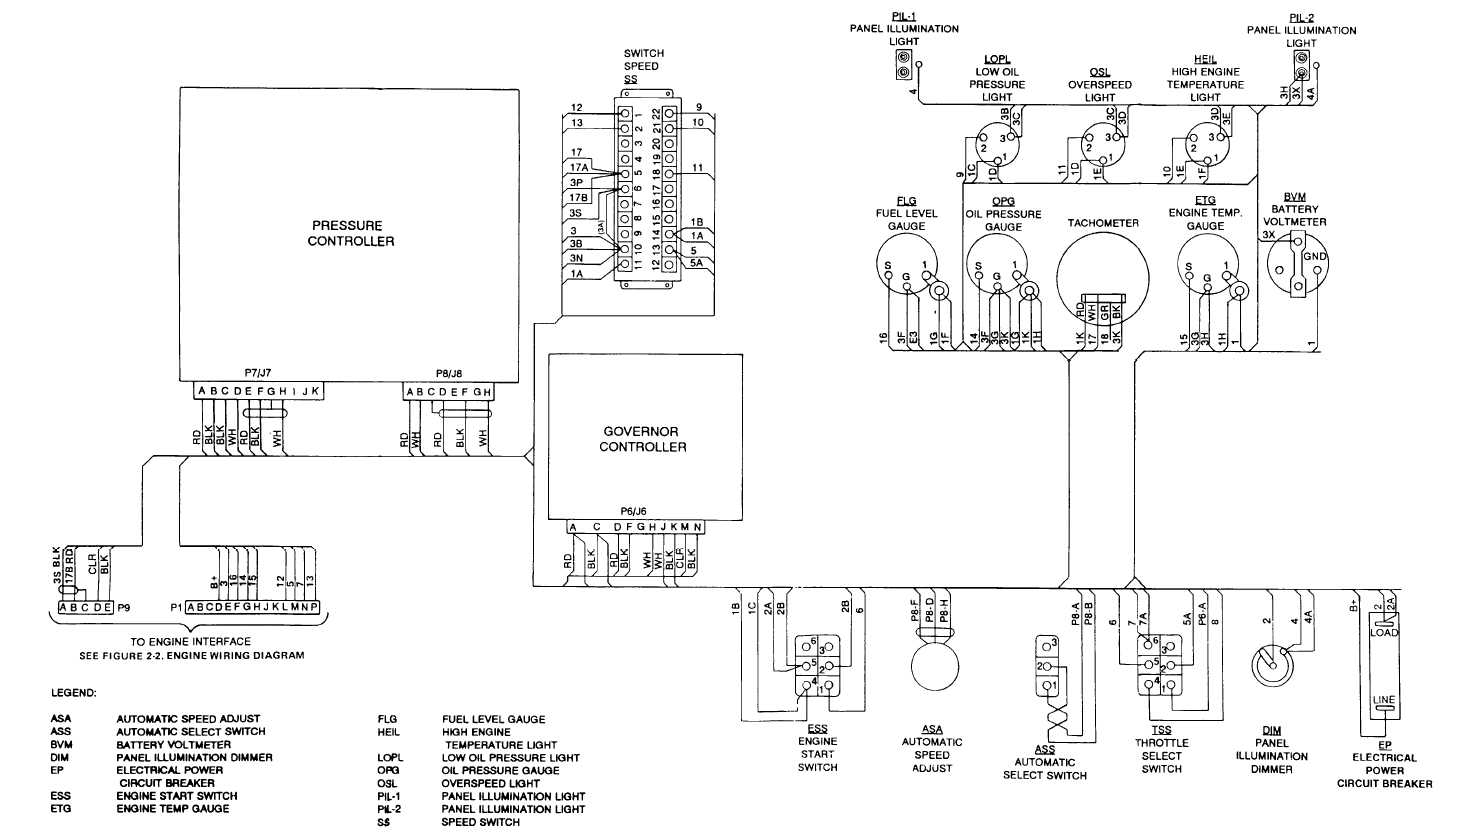 Control Wiring Diagrams Diagram Detailed For A Winch Schematics Schema Amf Panel